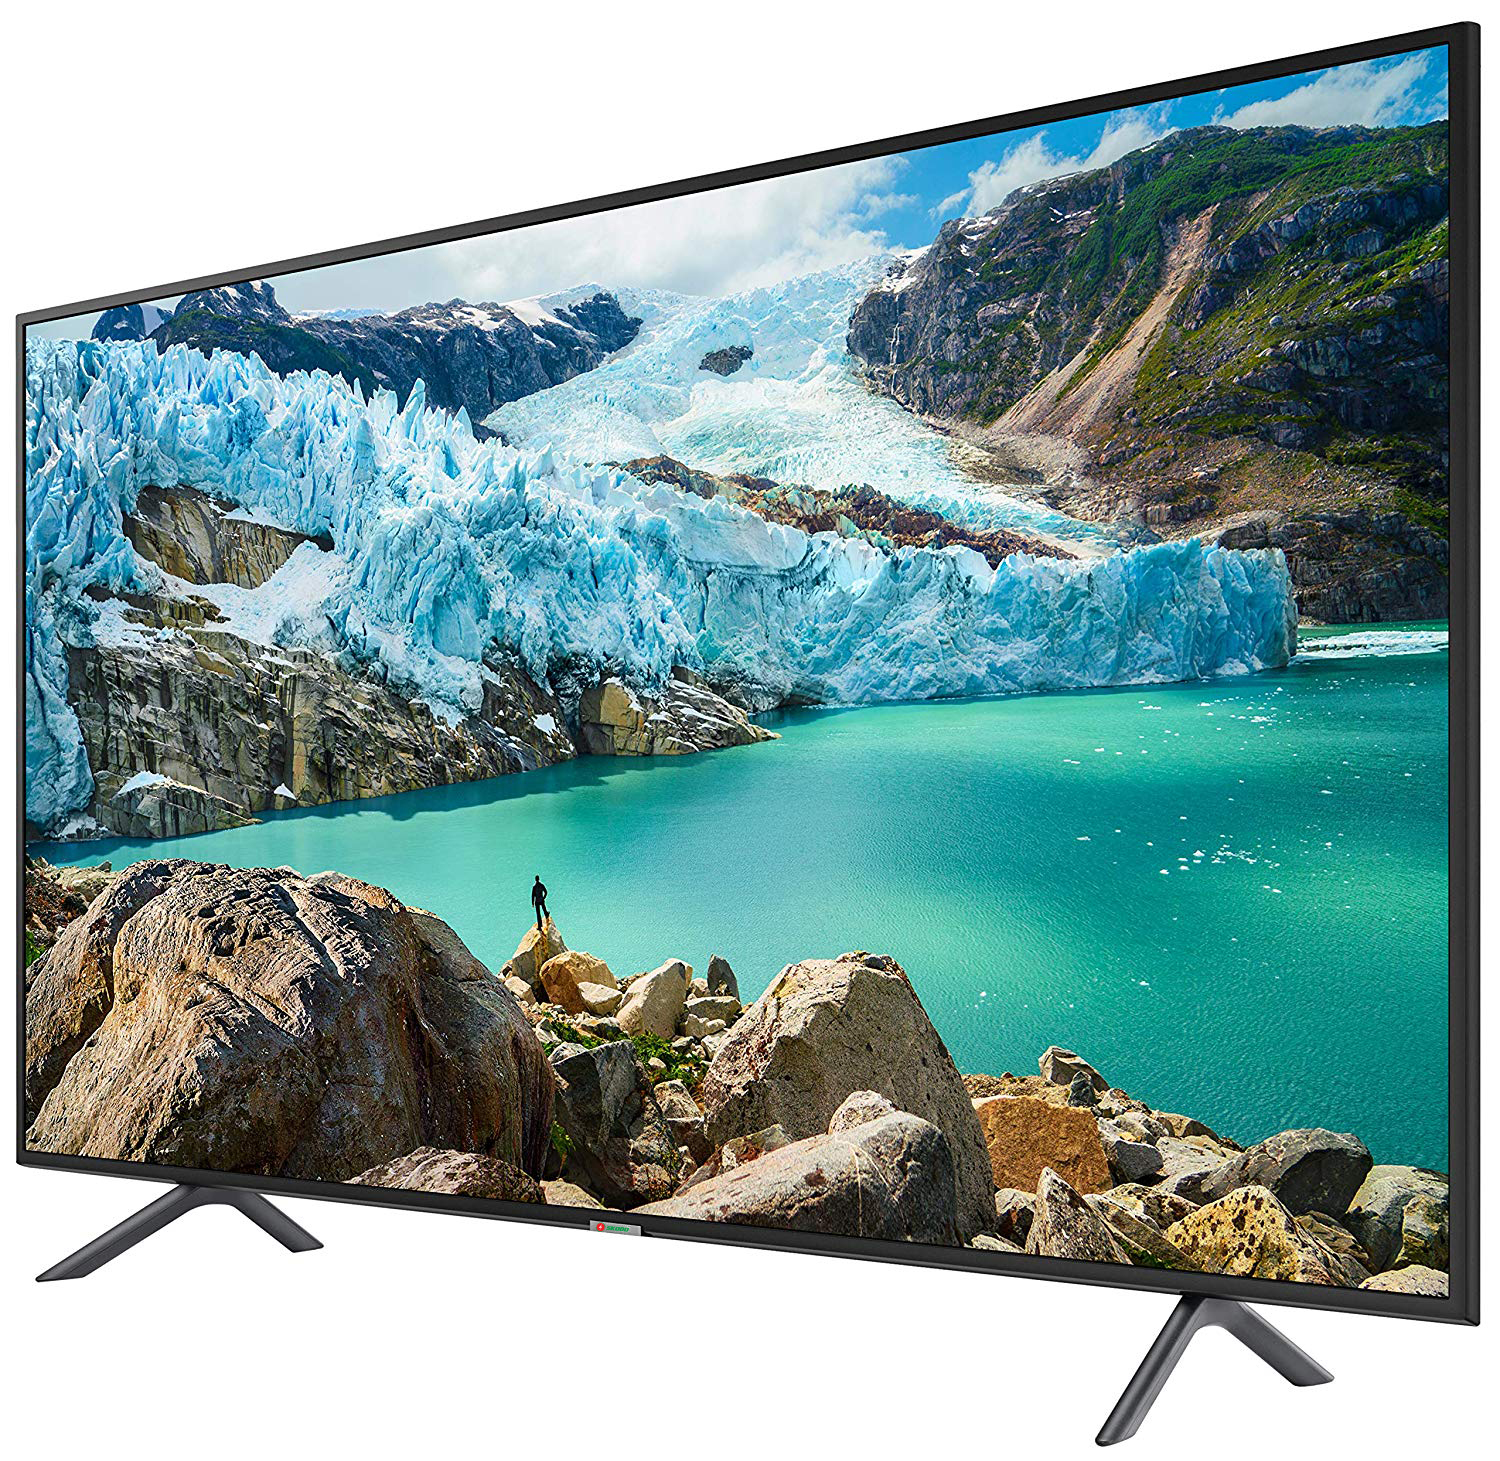 65inch SKODO Full HD smart TV